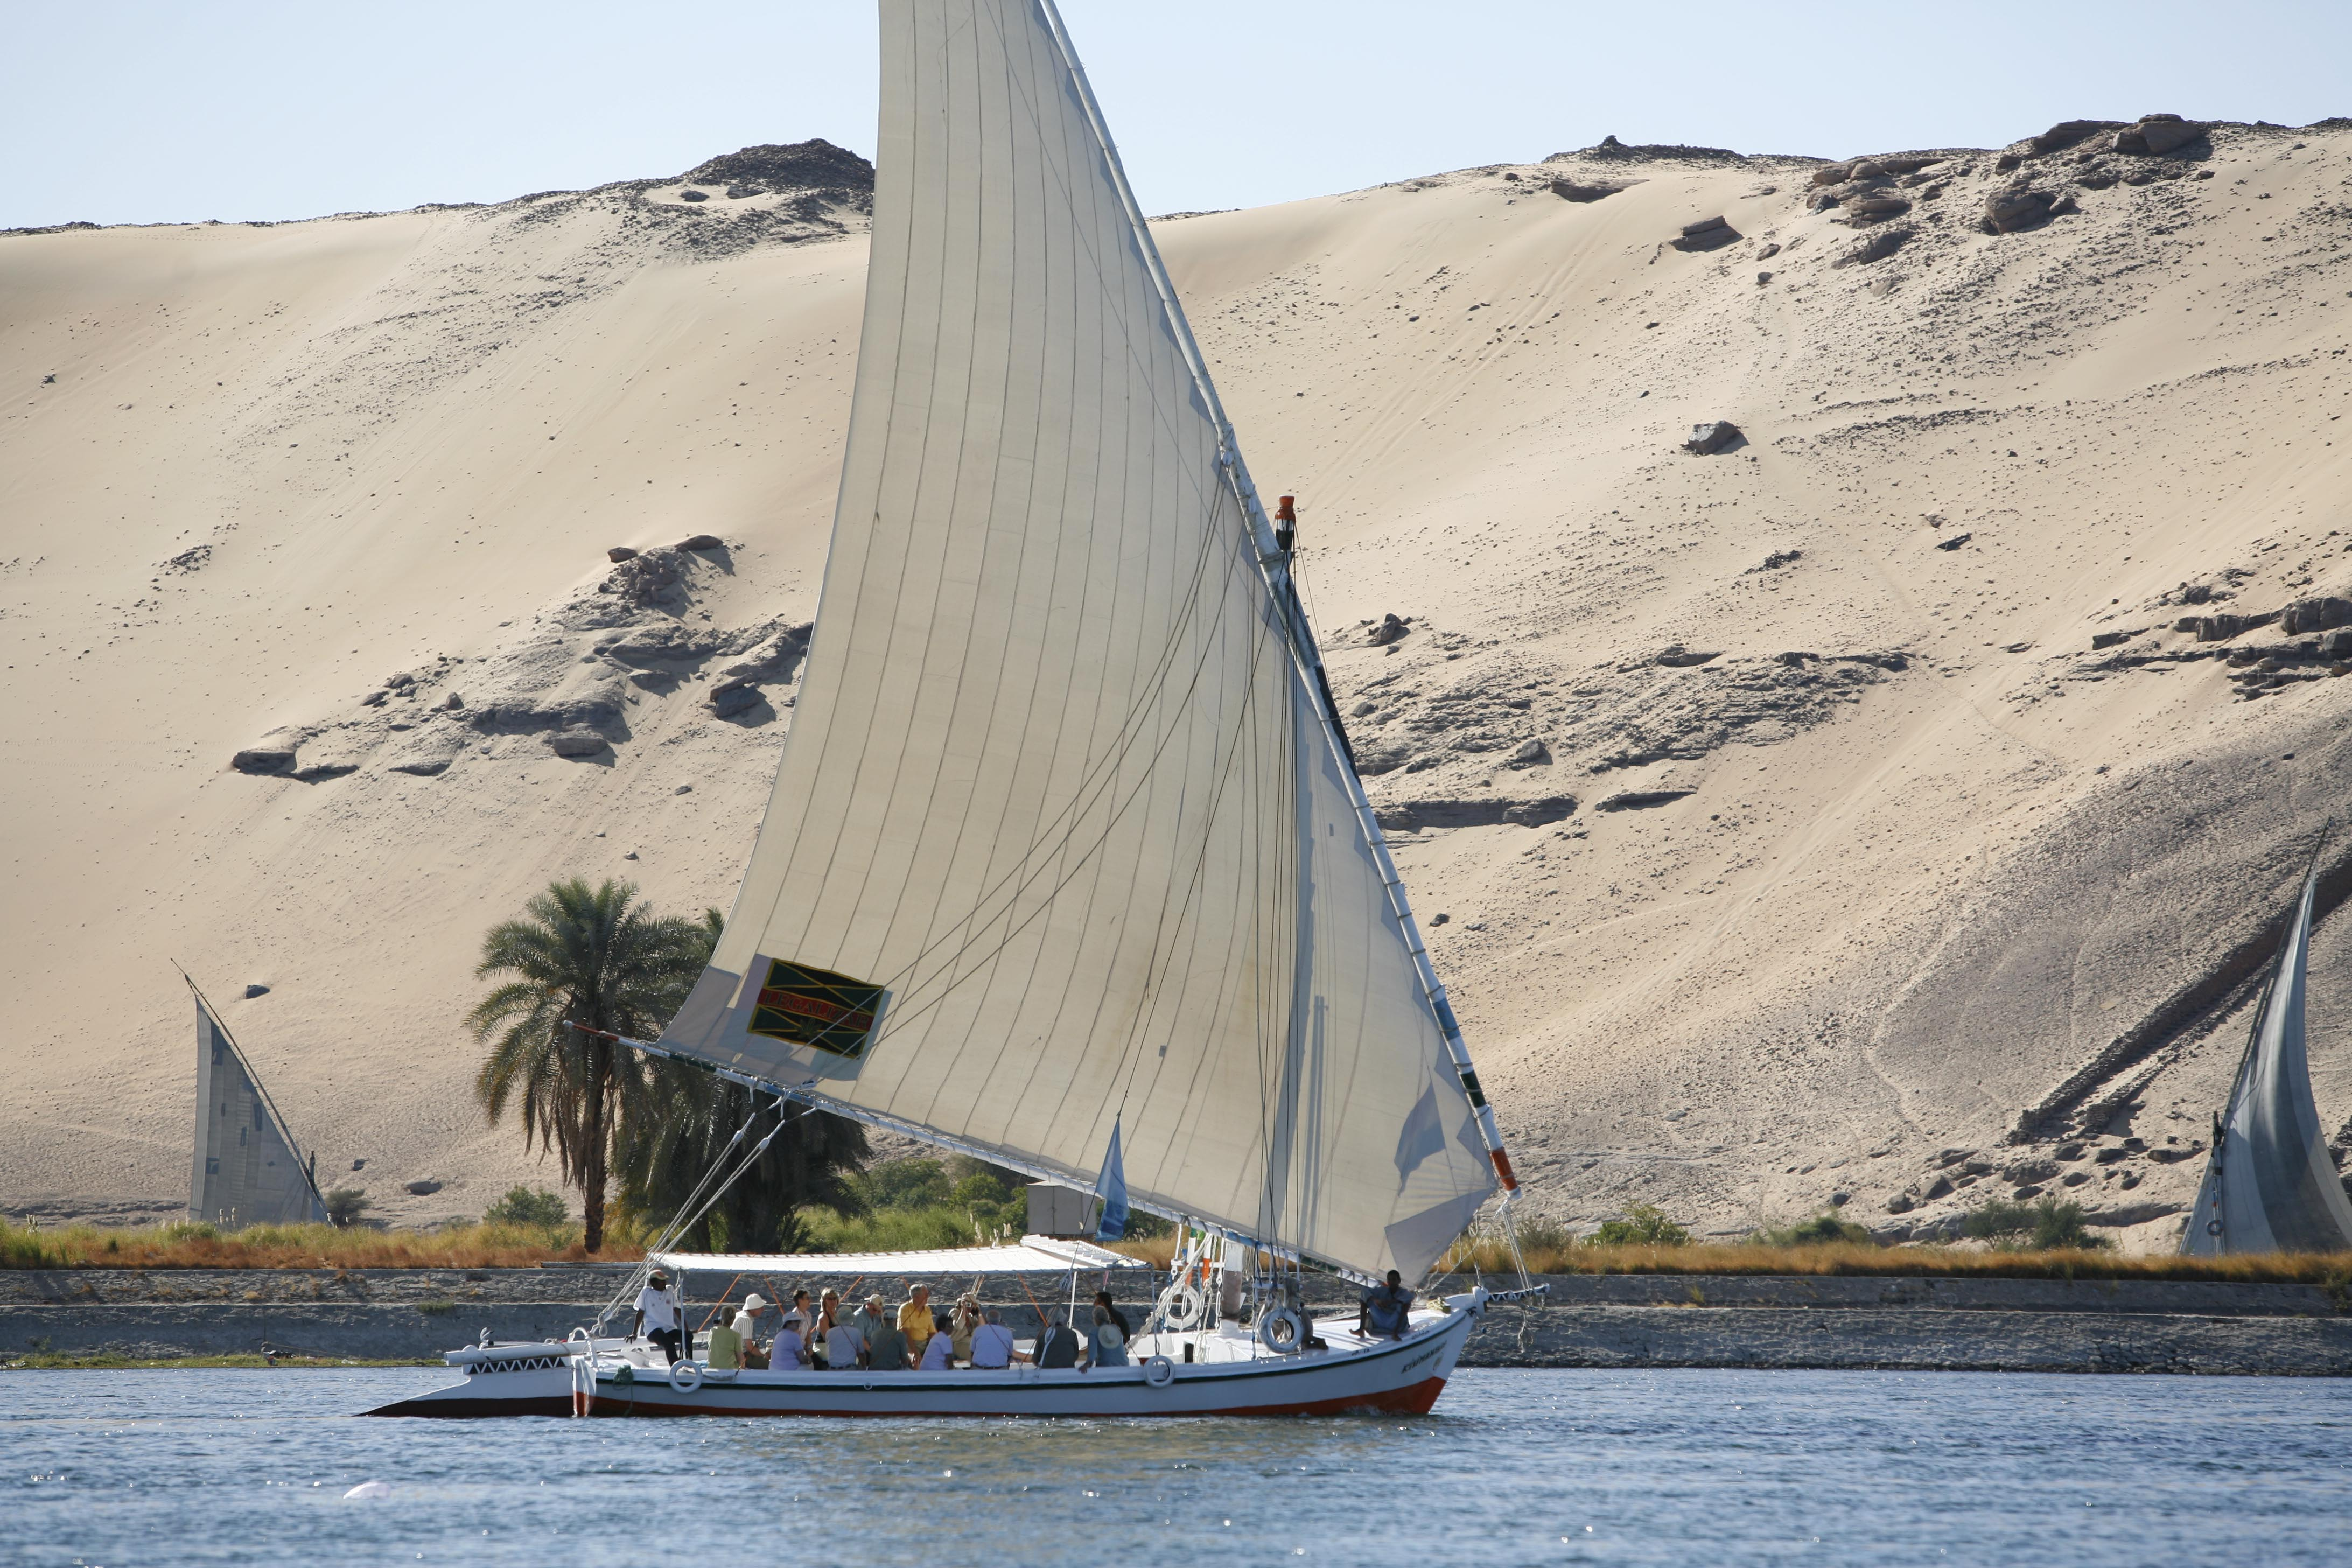 Grand Africa - Cairo to Cape Town 4